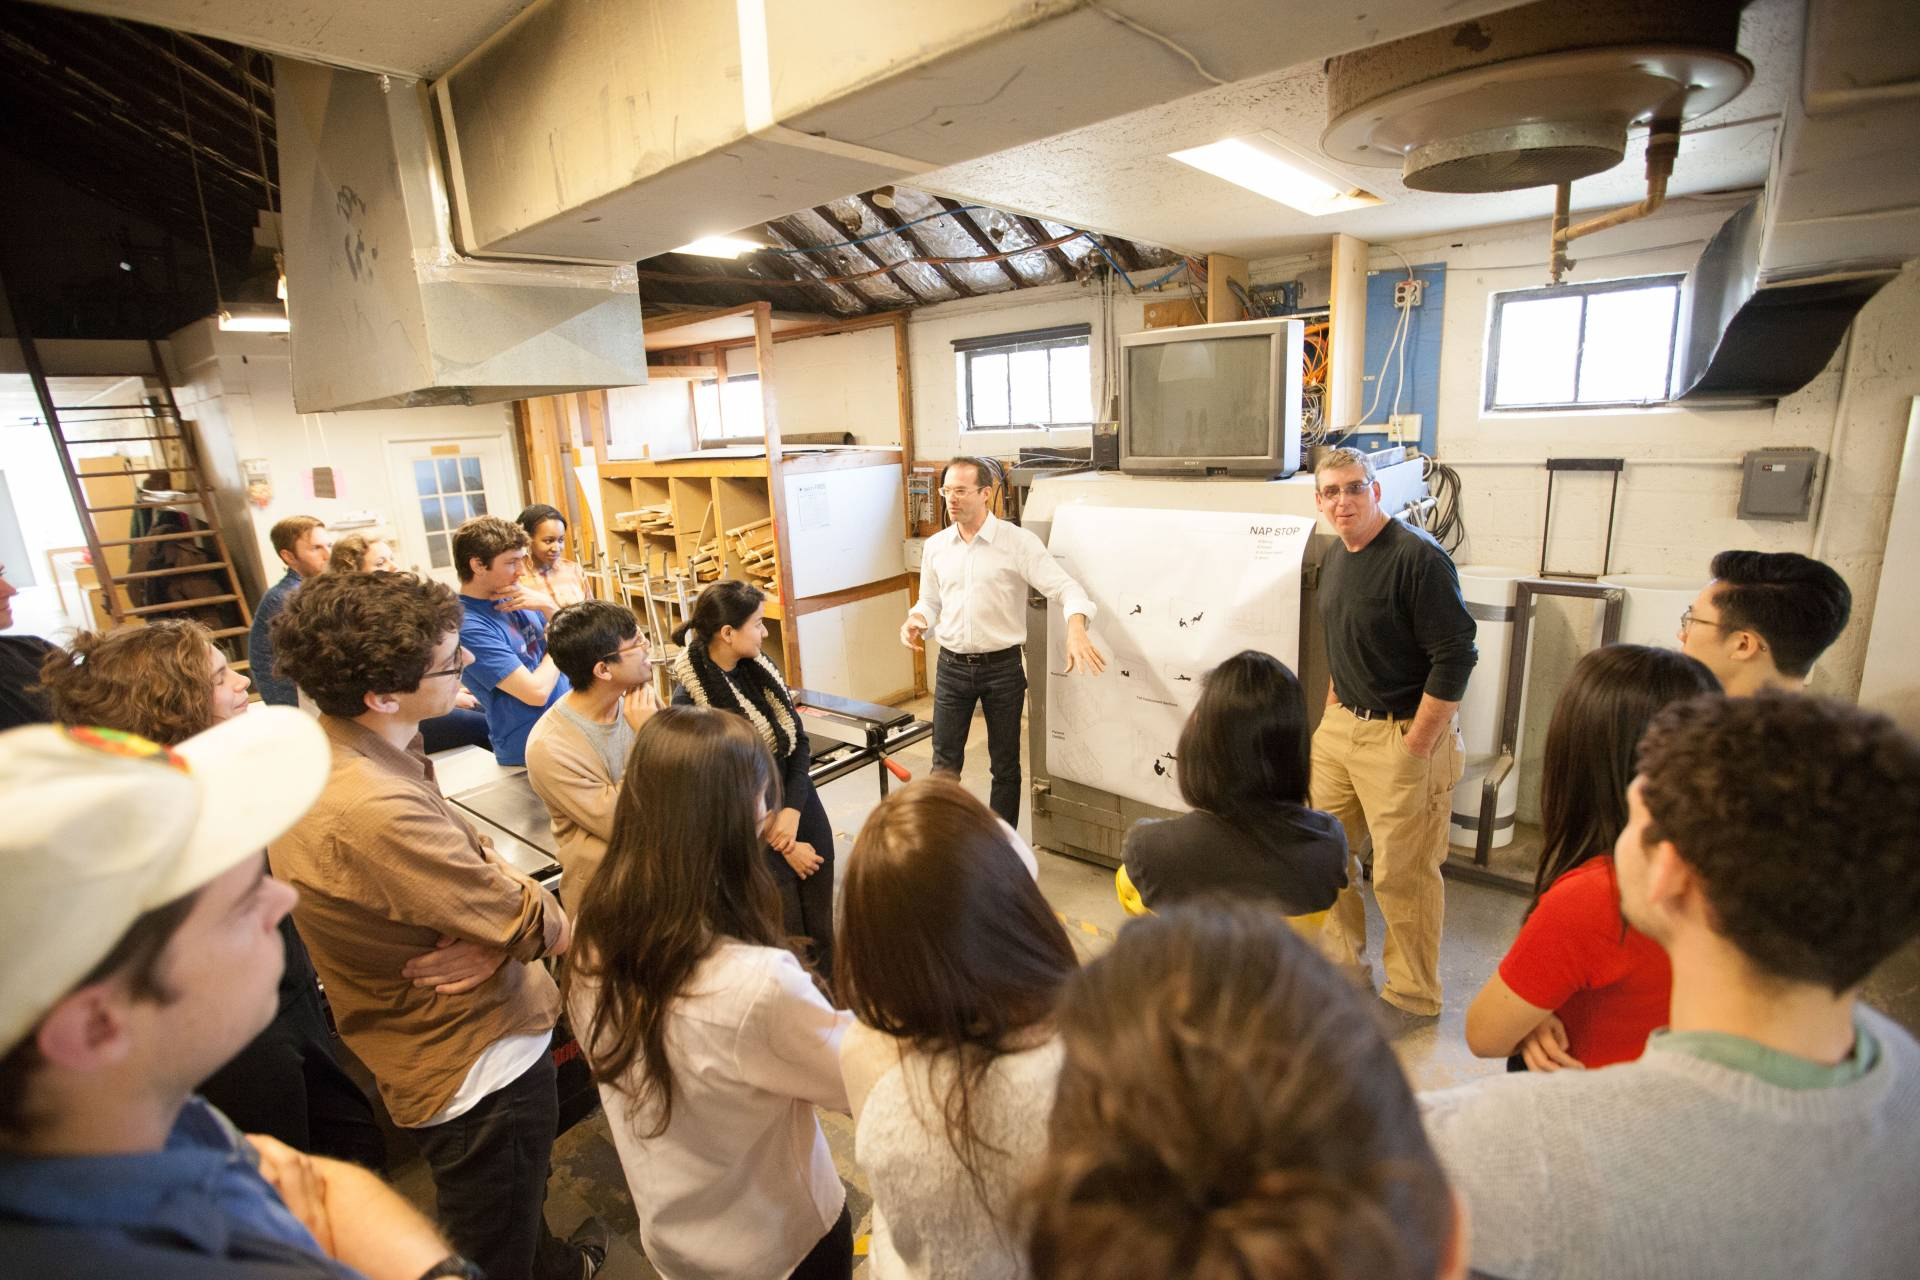 A class is held in an architecture workshop, with students huddled around two professors.